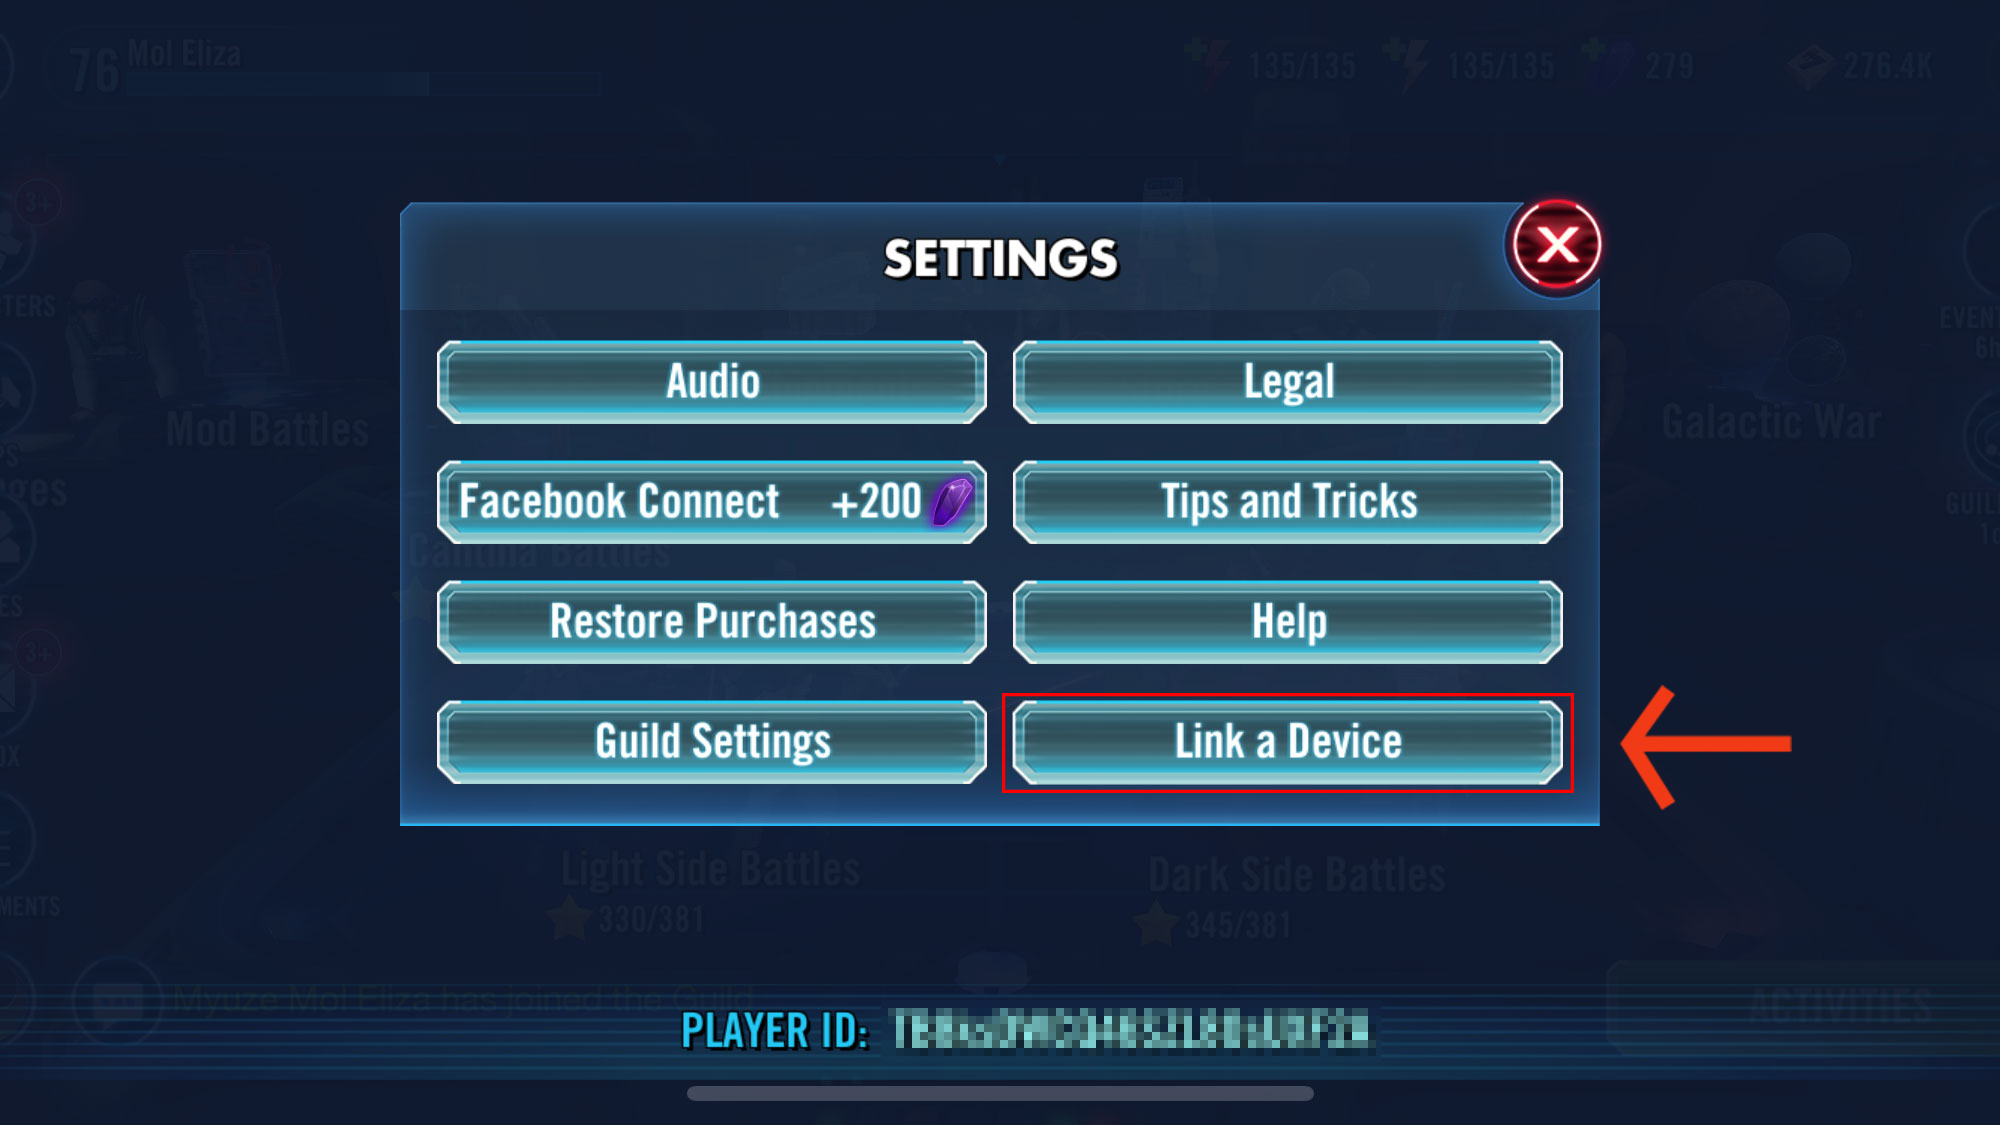 Move your Star Wars: Galaxy of Heroes account using this tool